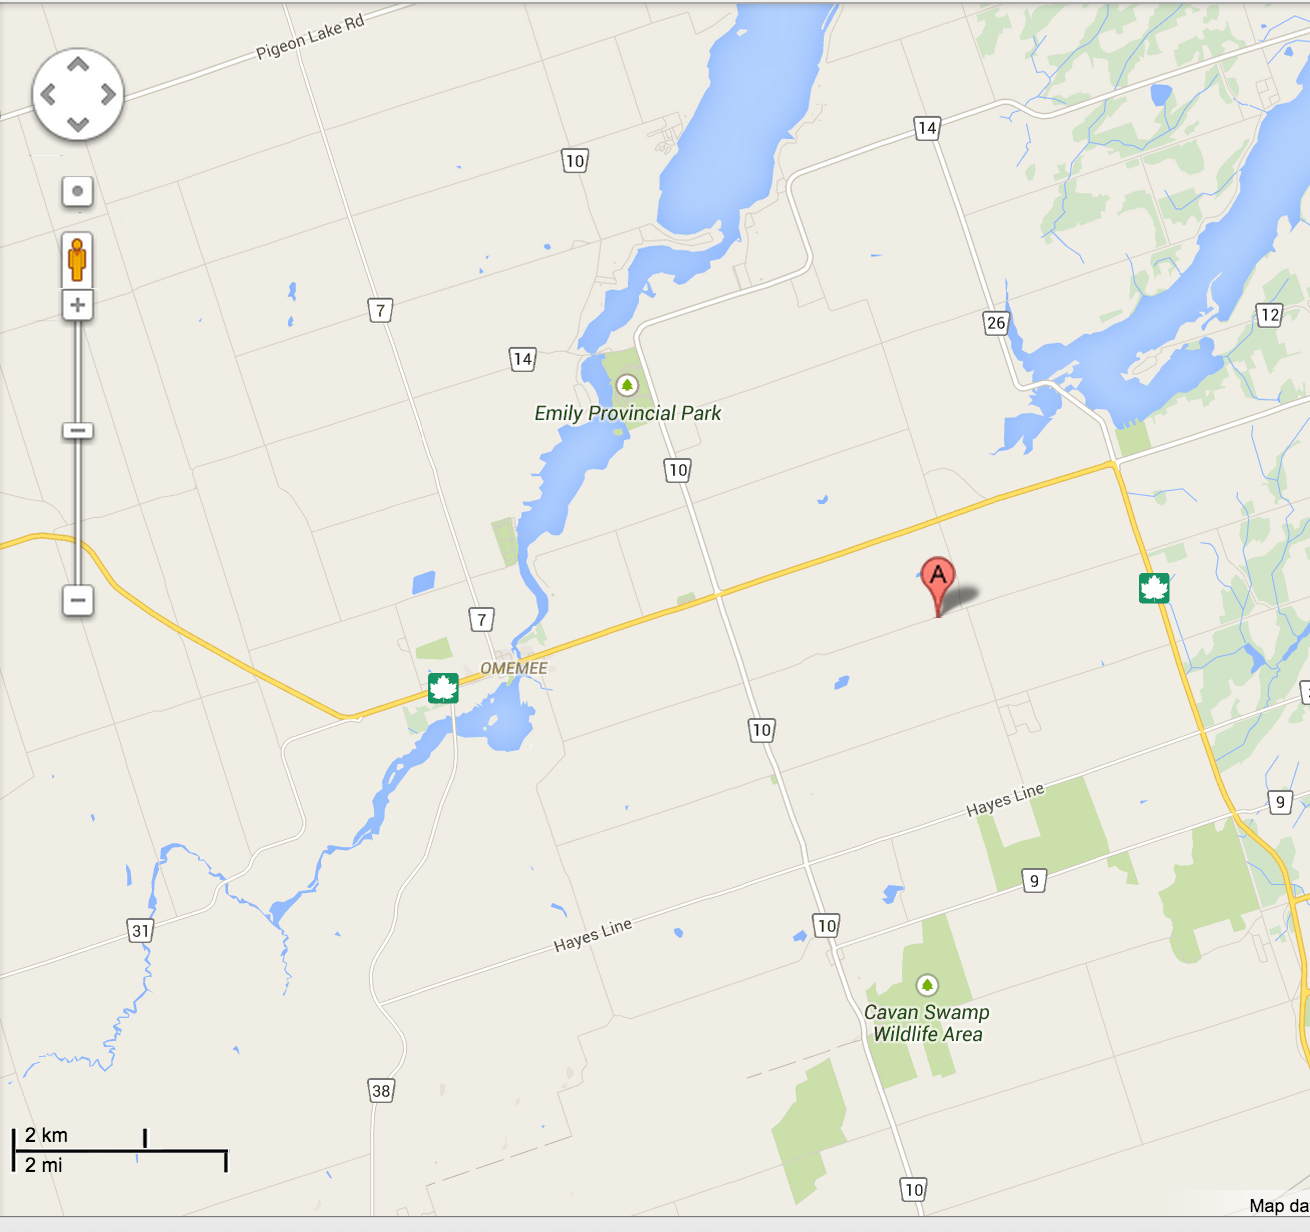 image Omemee Scouting Rainbarrel Sale Map see link below